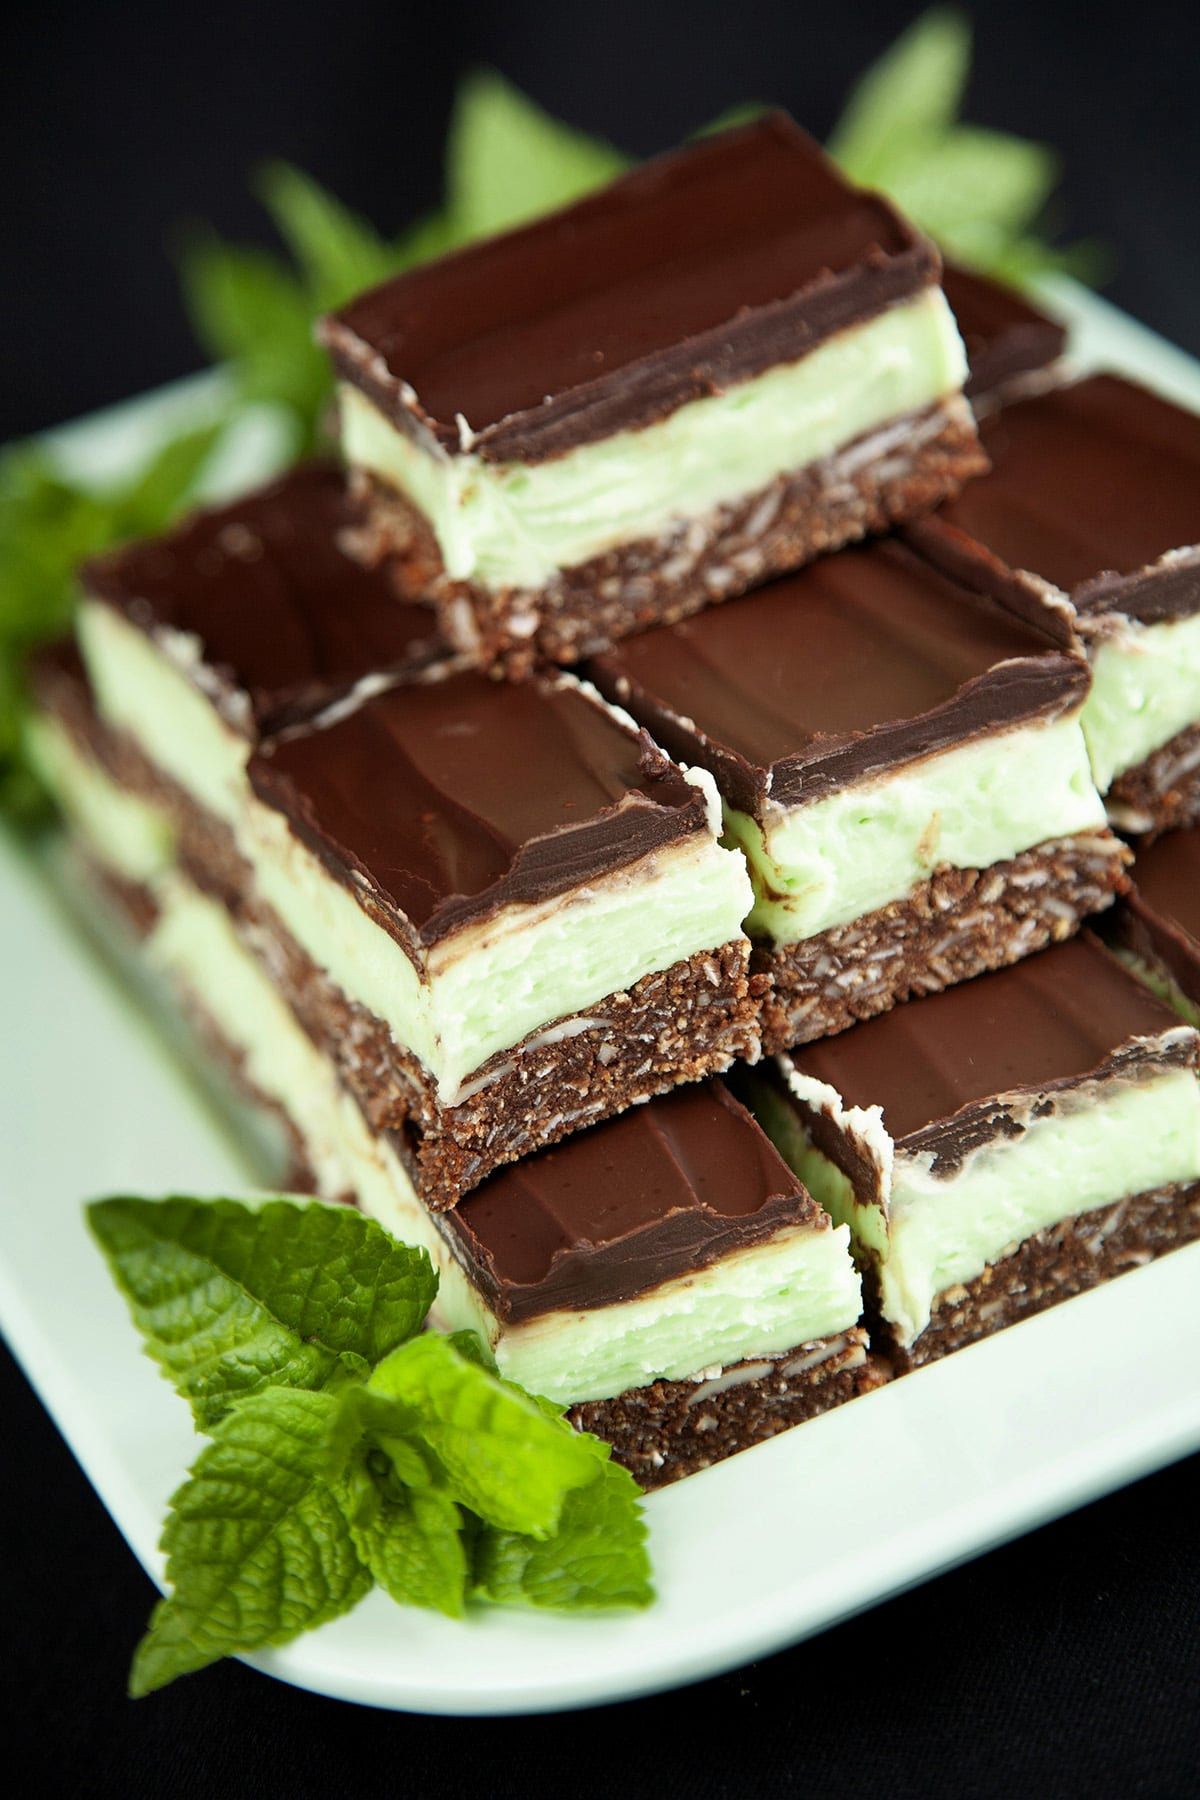 Close up view of a plate of Creme de Menthe Nanaimo Bars - a 3 layered bar. The top and bottom layers are chocolate, and the middle layer is a green buttercream. They are on a green plate, garnished with a sprig of fresh mint.